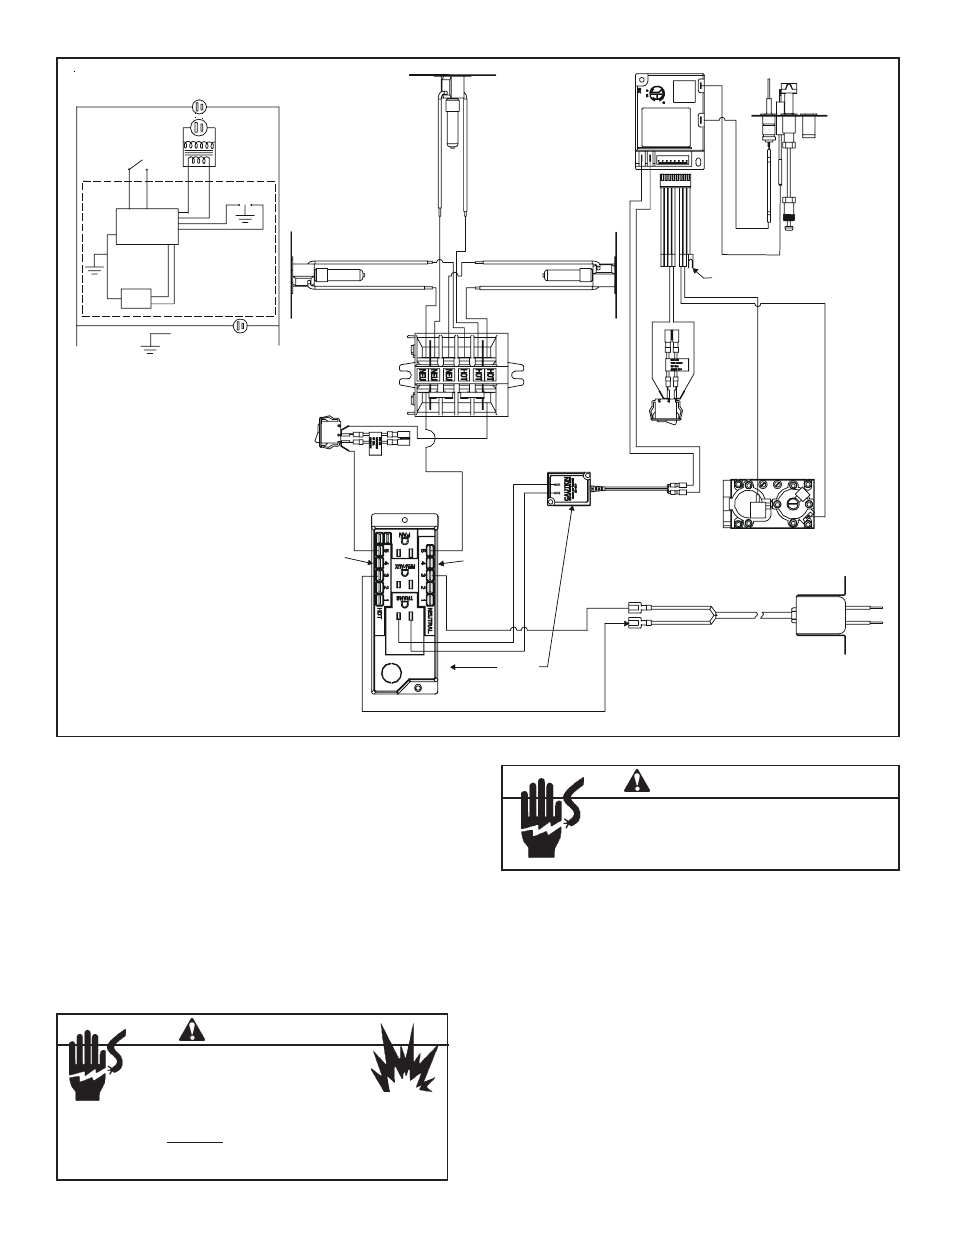 skytech gas fireplace. skytech sky 5301 backlit lcd touch ... fireplace remote sensor wiring diagram